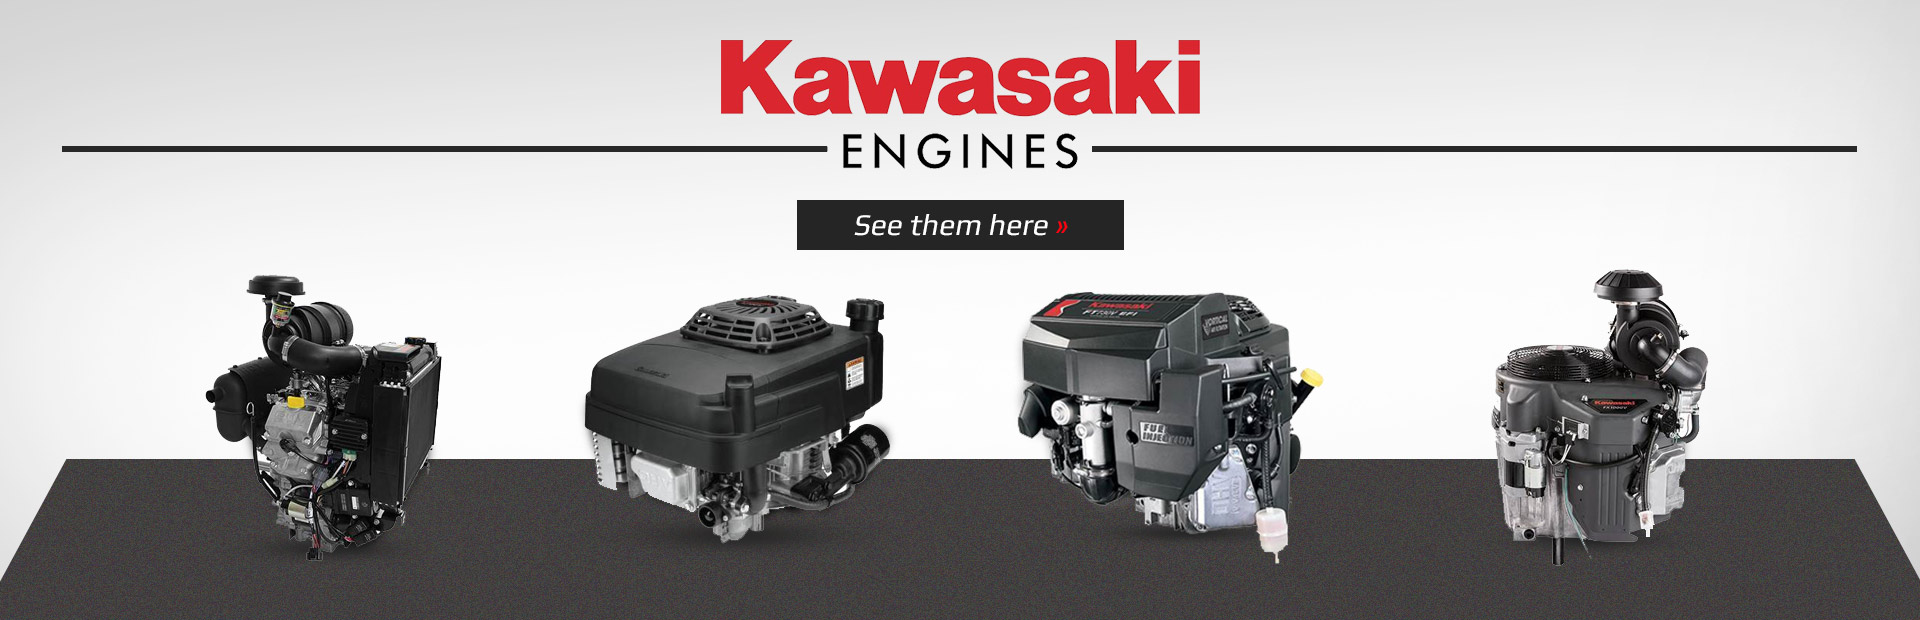 Kawasaki Engines: See them here.